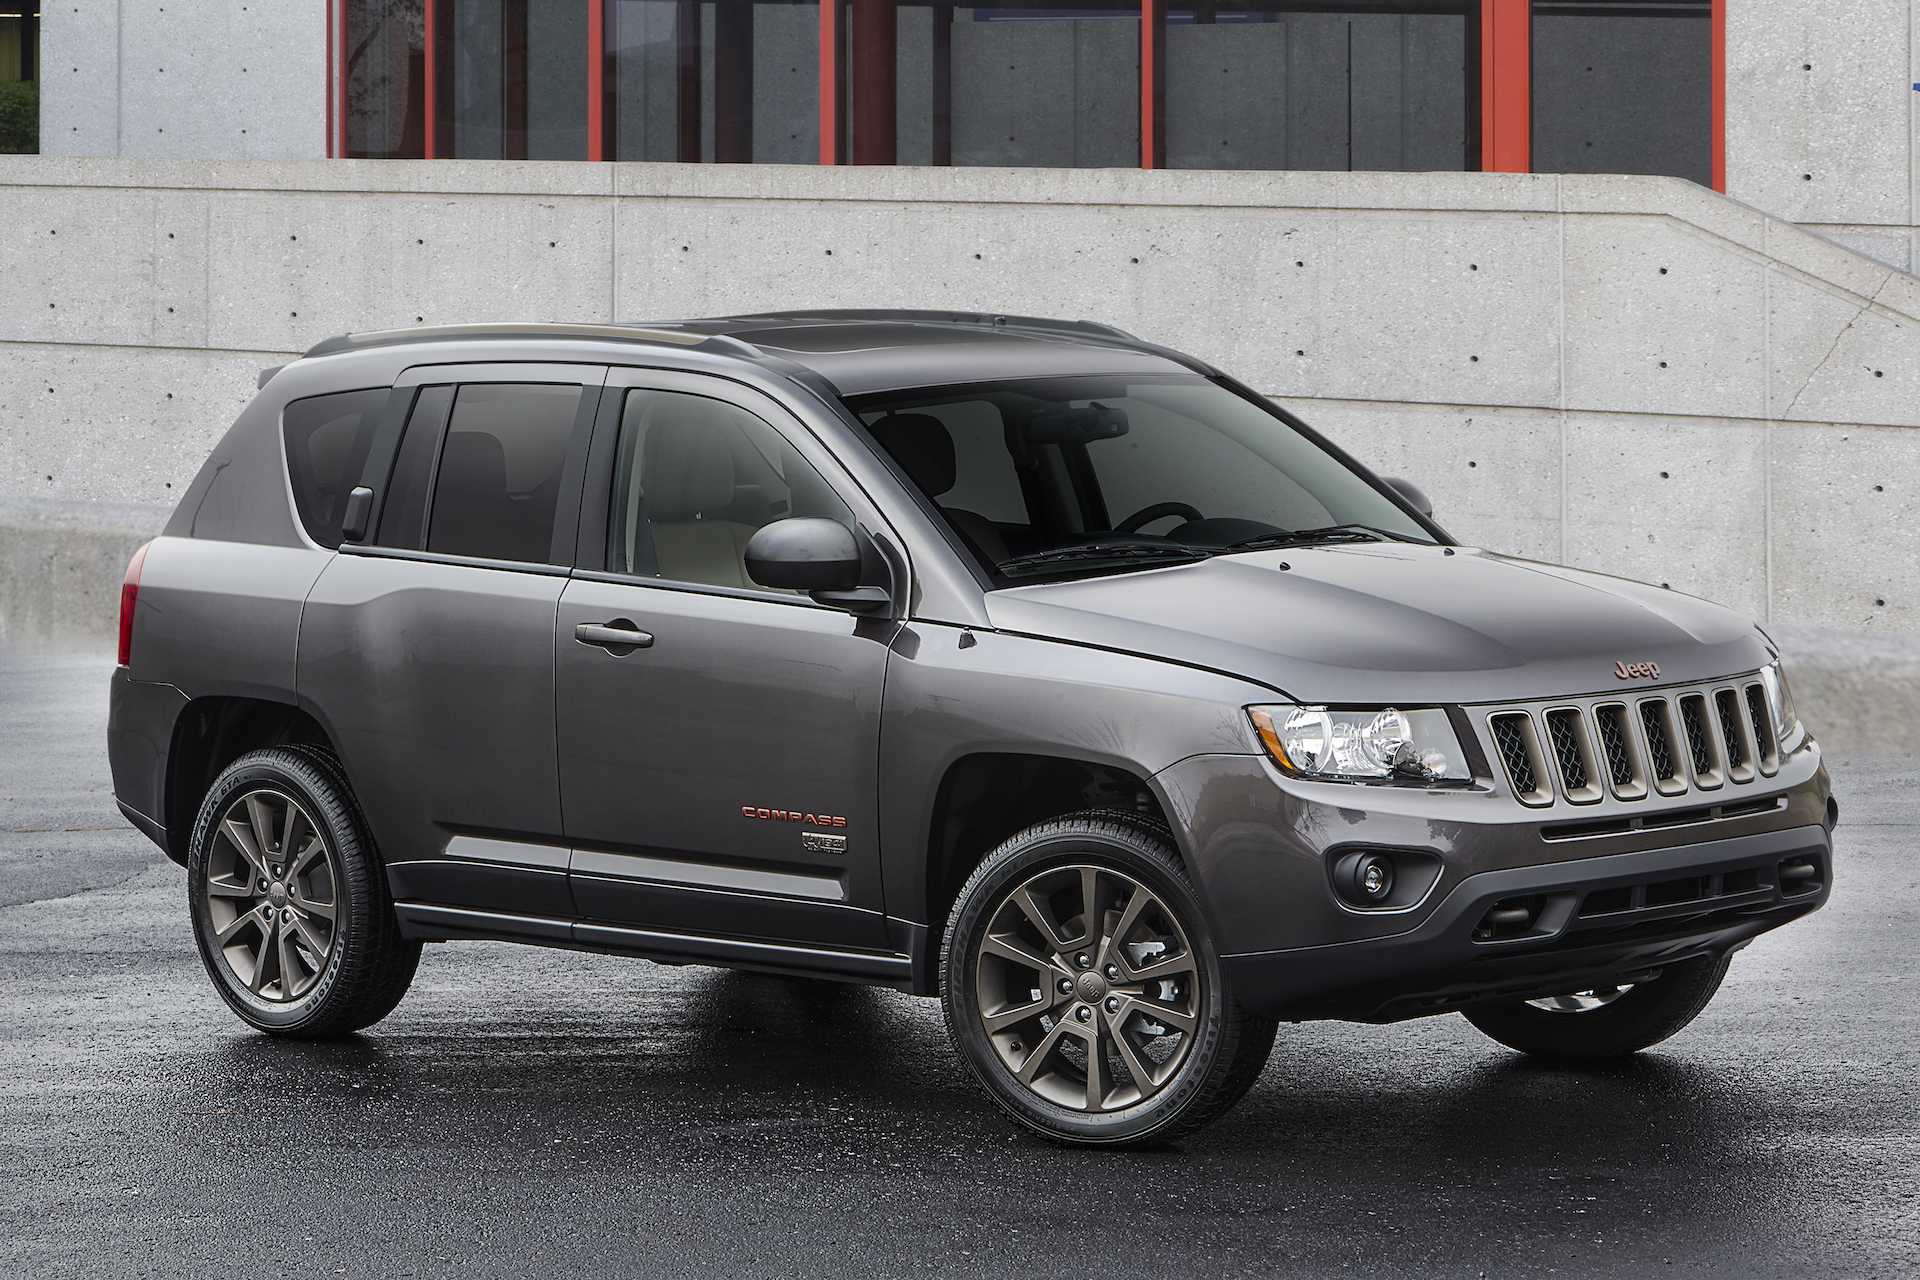 Used Trucks Houston >> 2017 Jeep Compass Review, Ratings, Specs, Prices, and Photos - The Car Connection